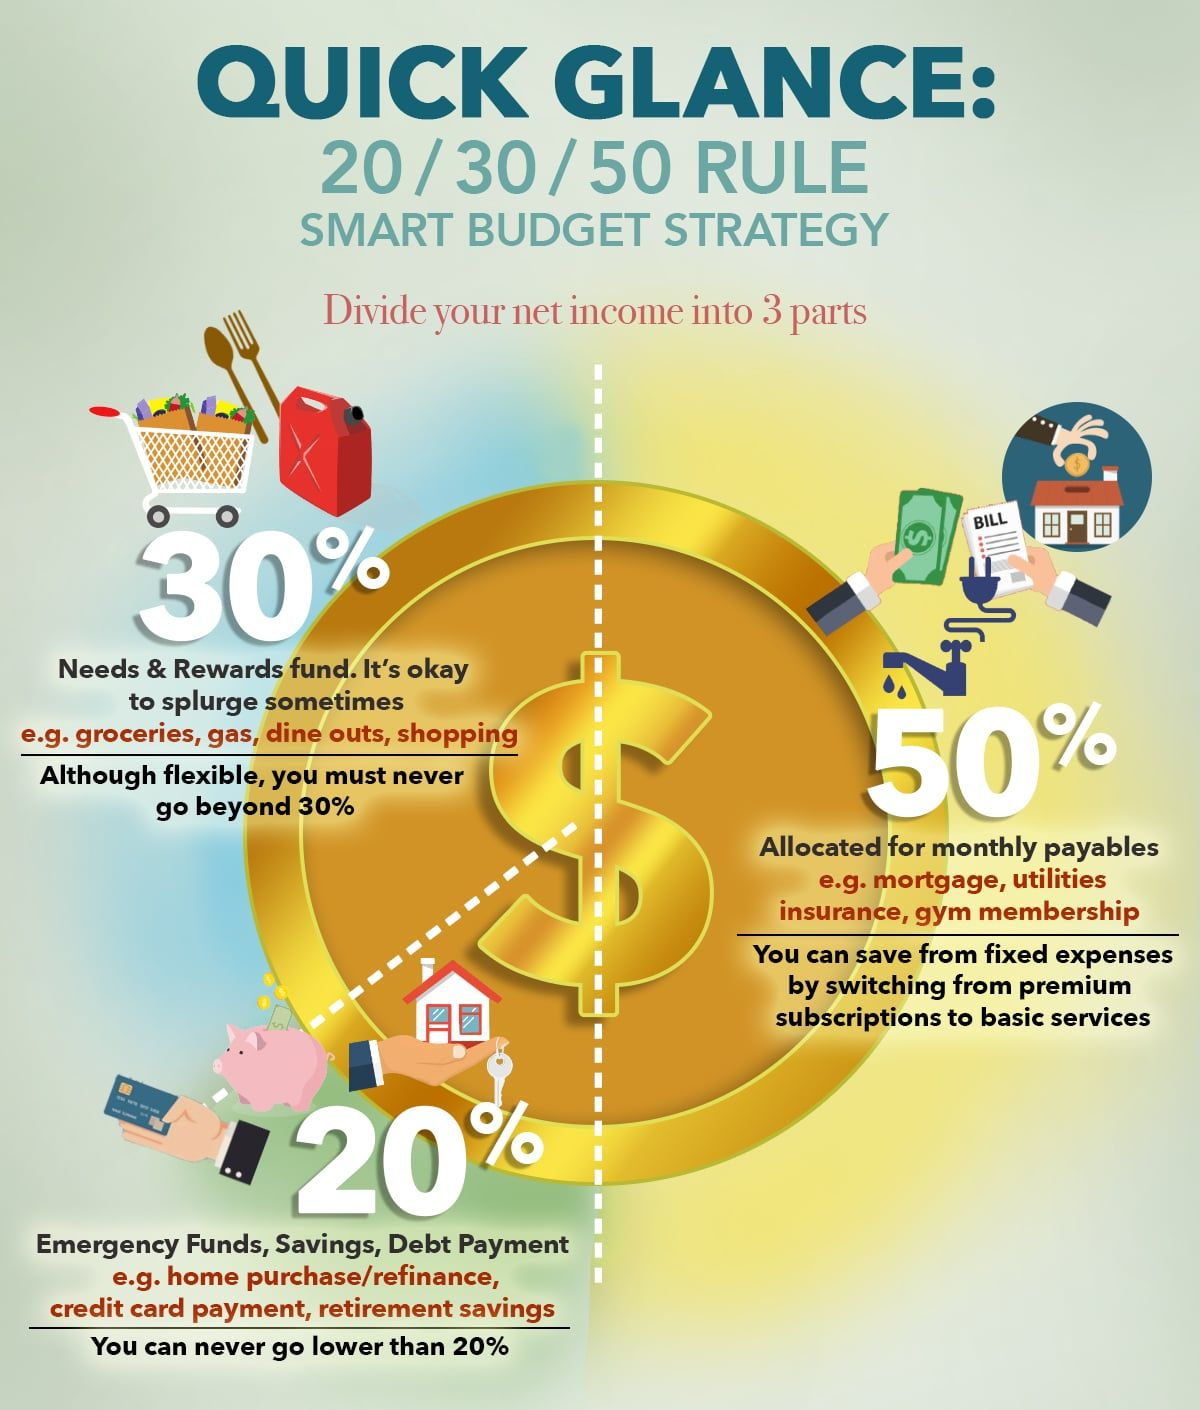 How Much Should You Save 50 20 30 Rule Personal Budget Smart